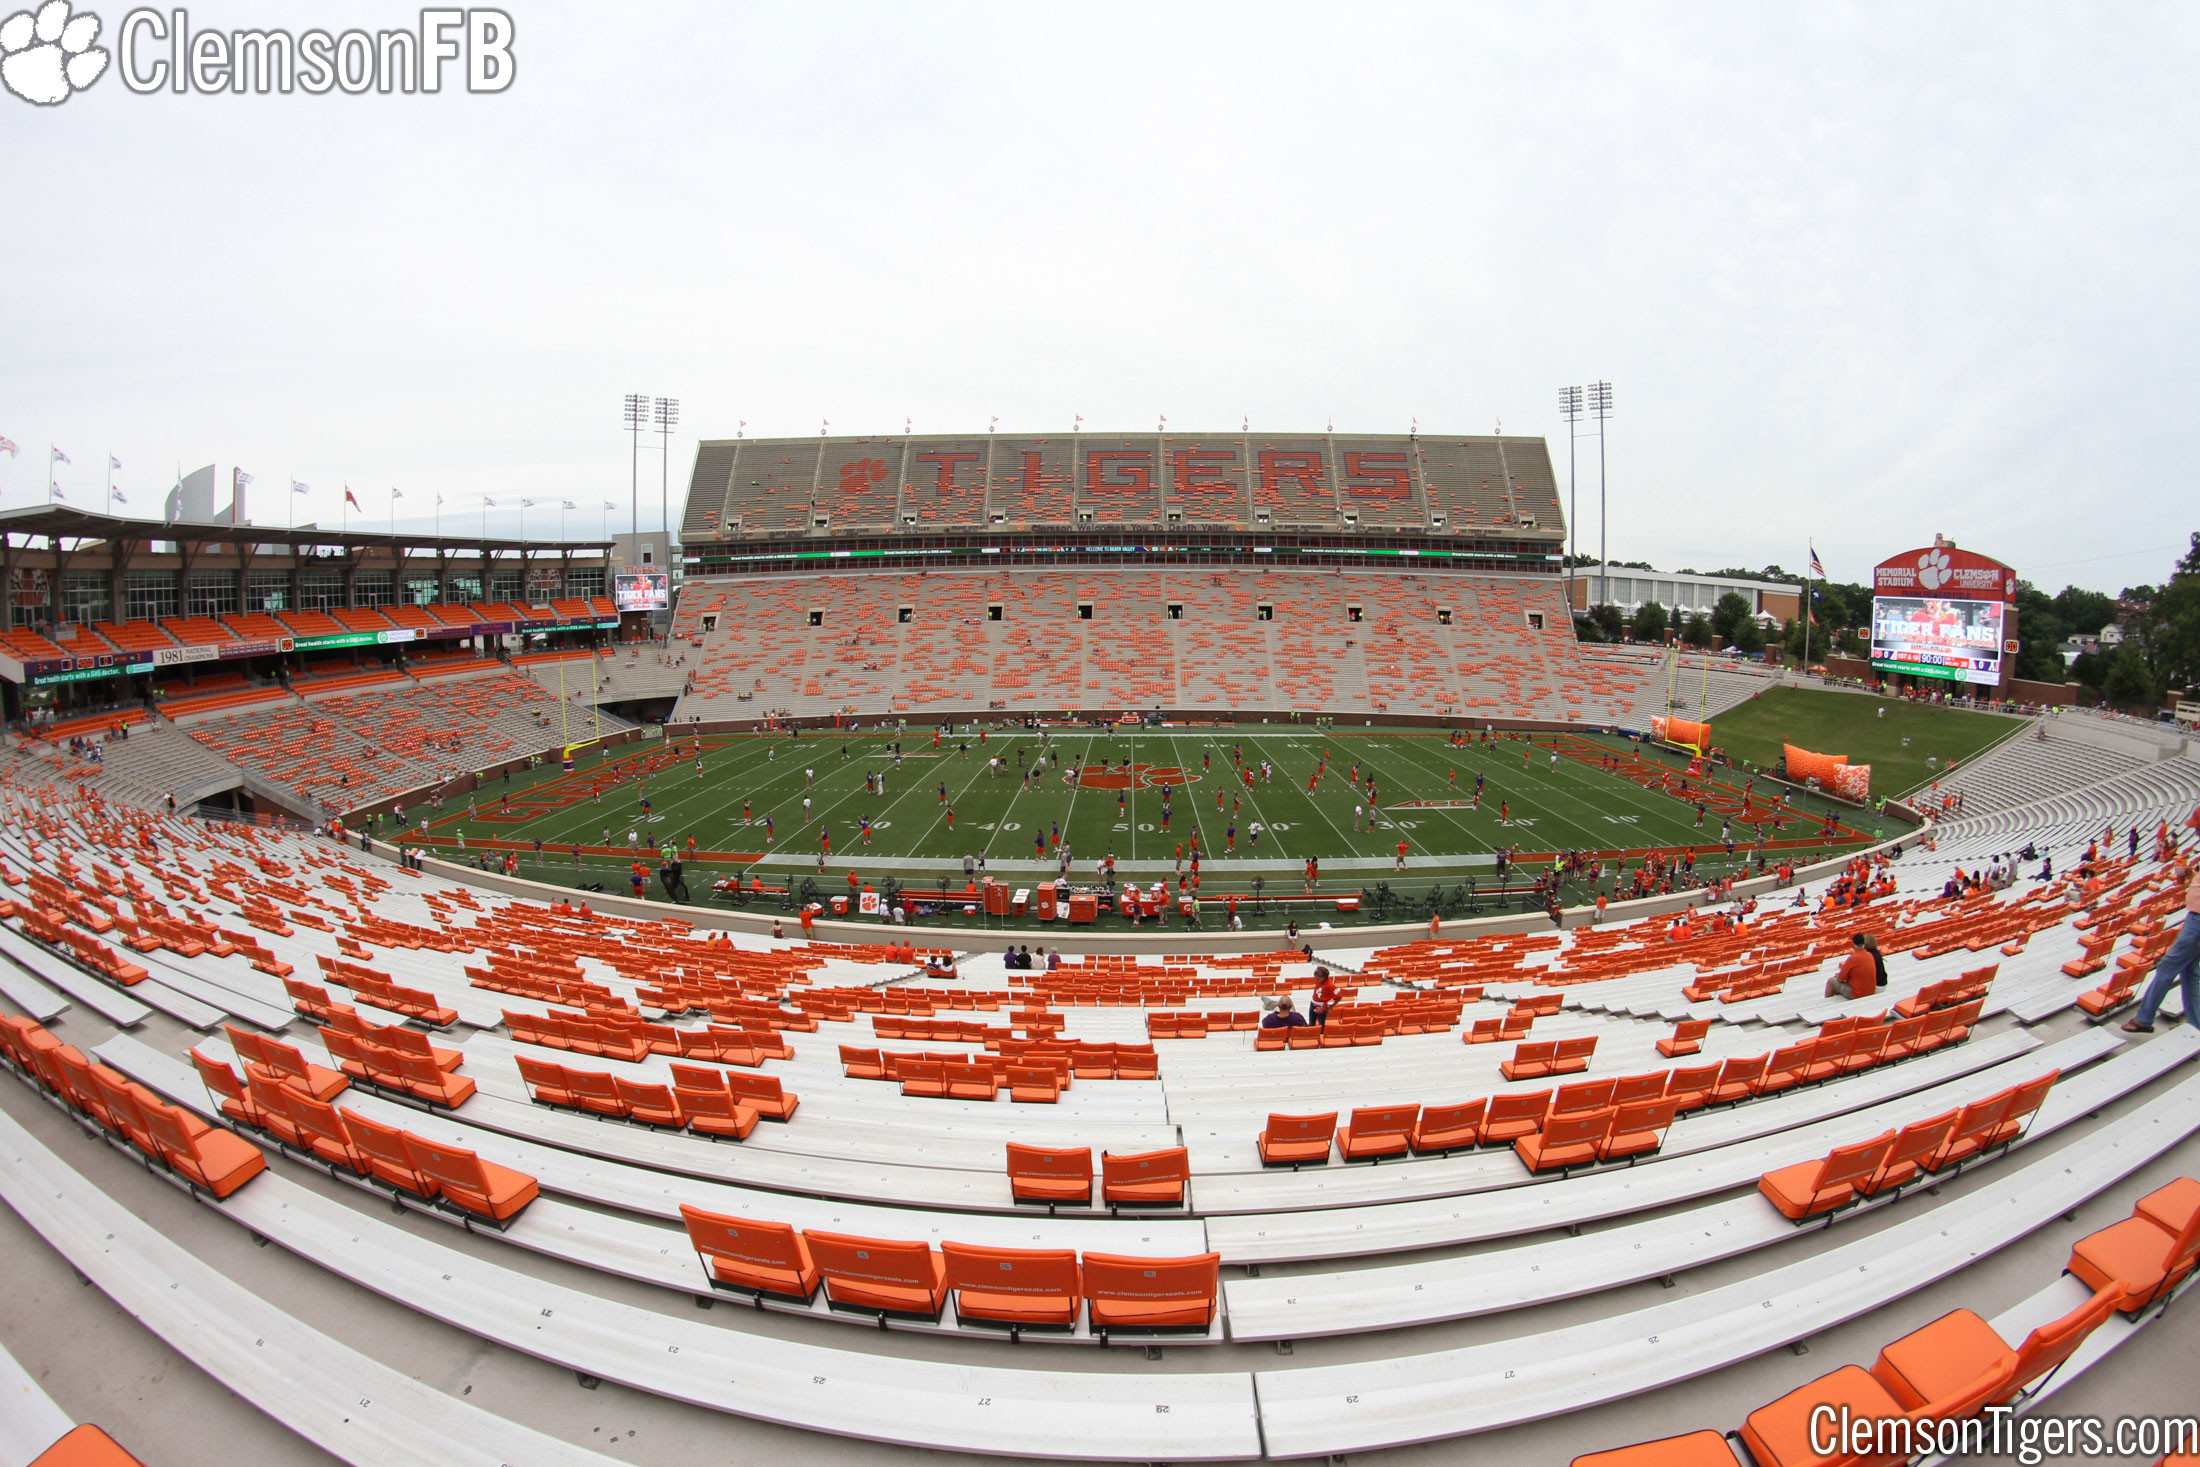 Clemson To Reinforce Security Measures for Weekend Events